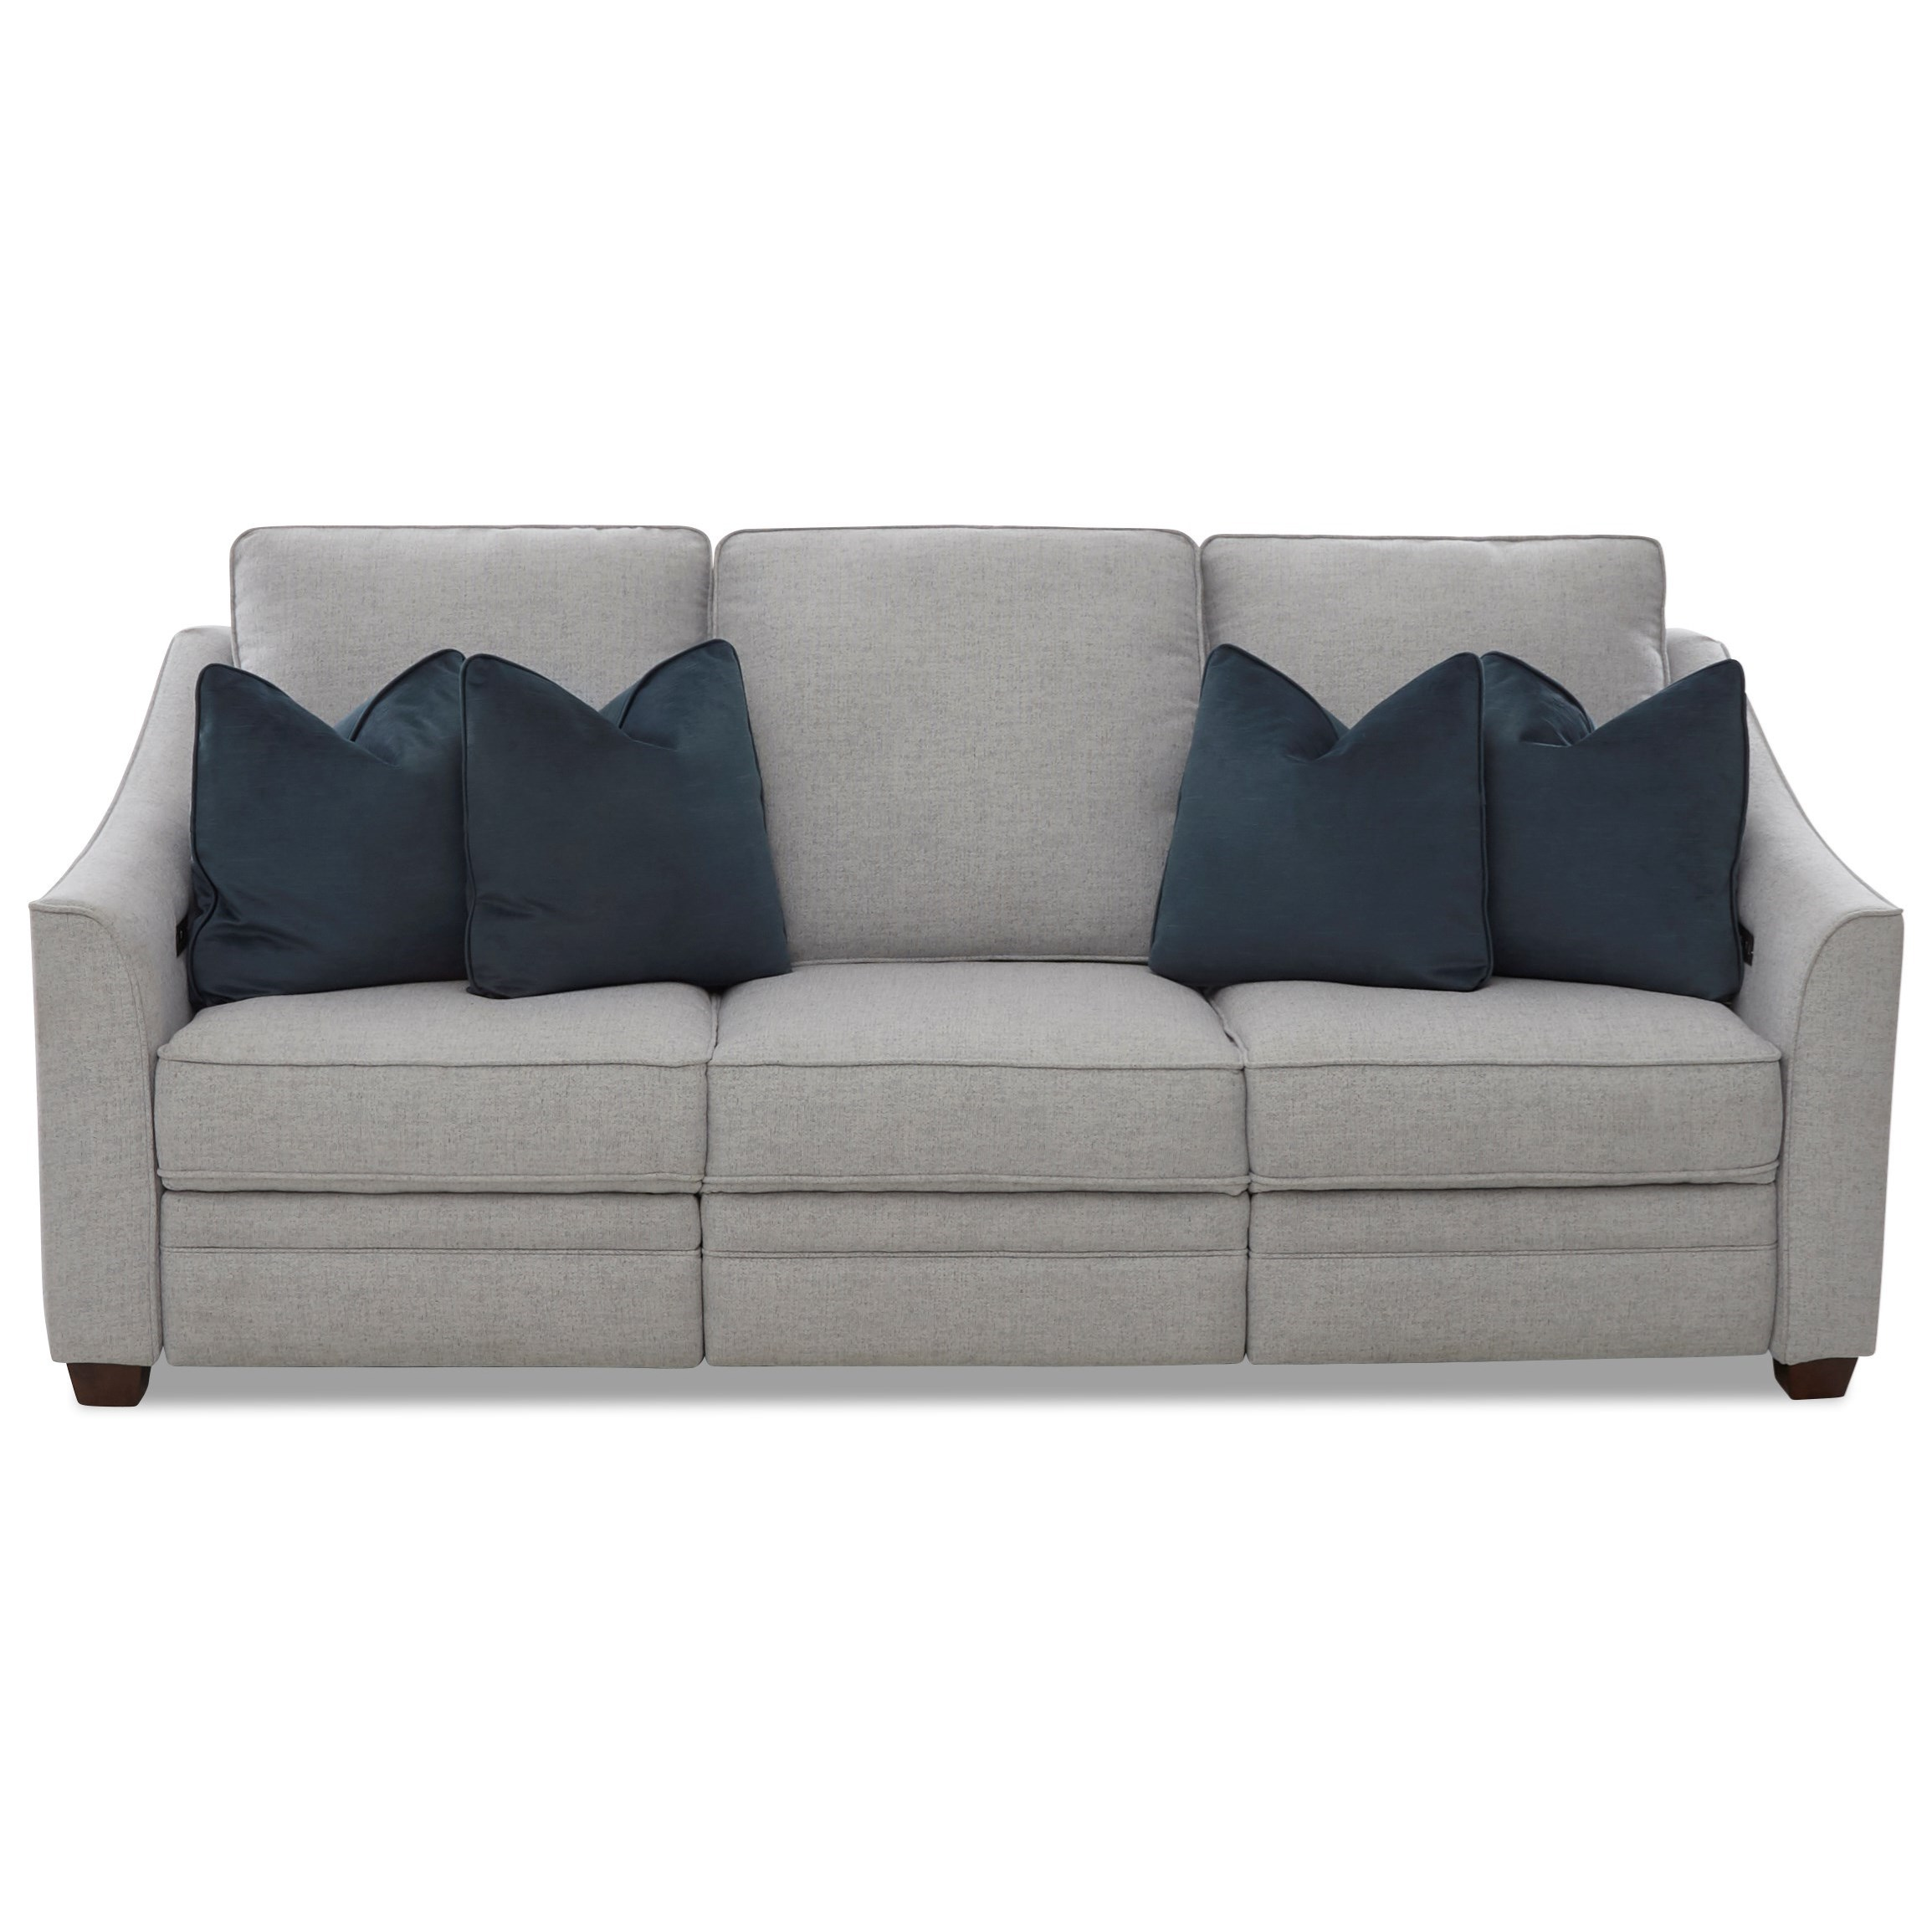 Ensley Power Hybrid Sofa w/ Pwr Hdrsts & Lumbar by Klaussner at Johnny Janosik